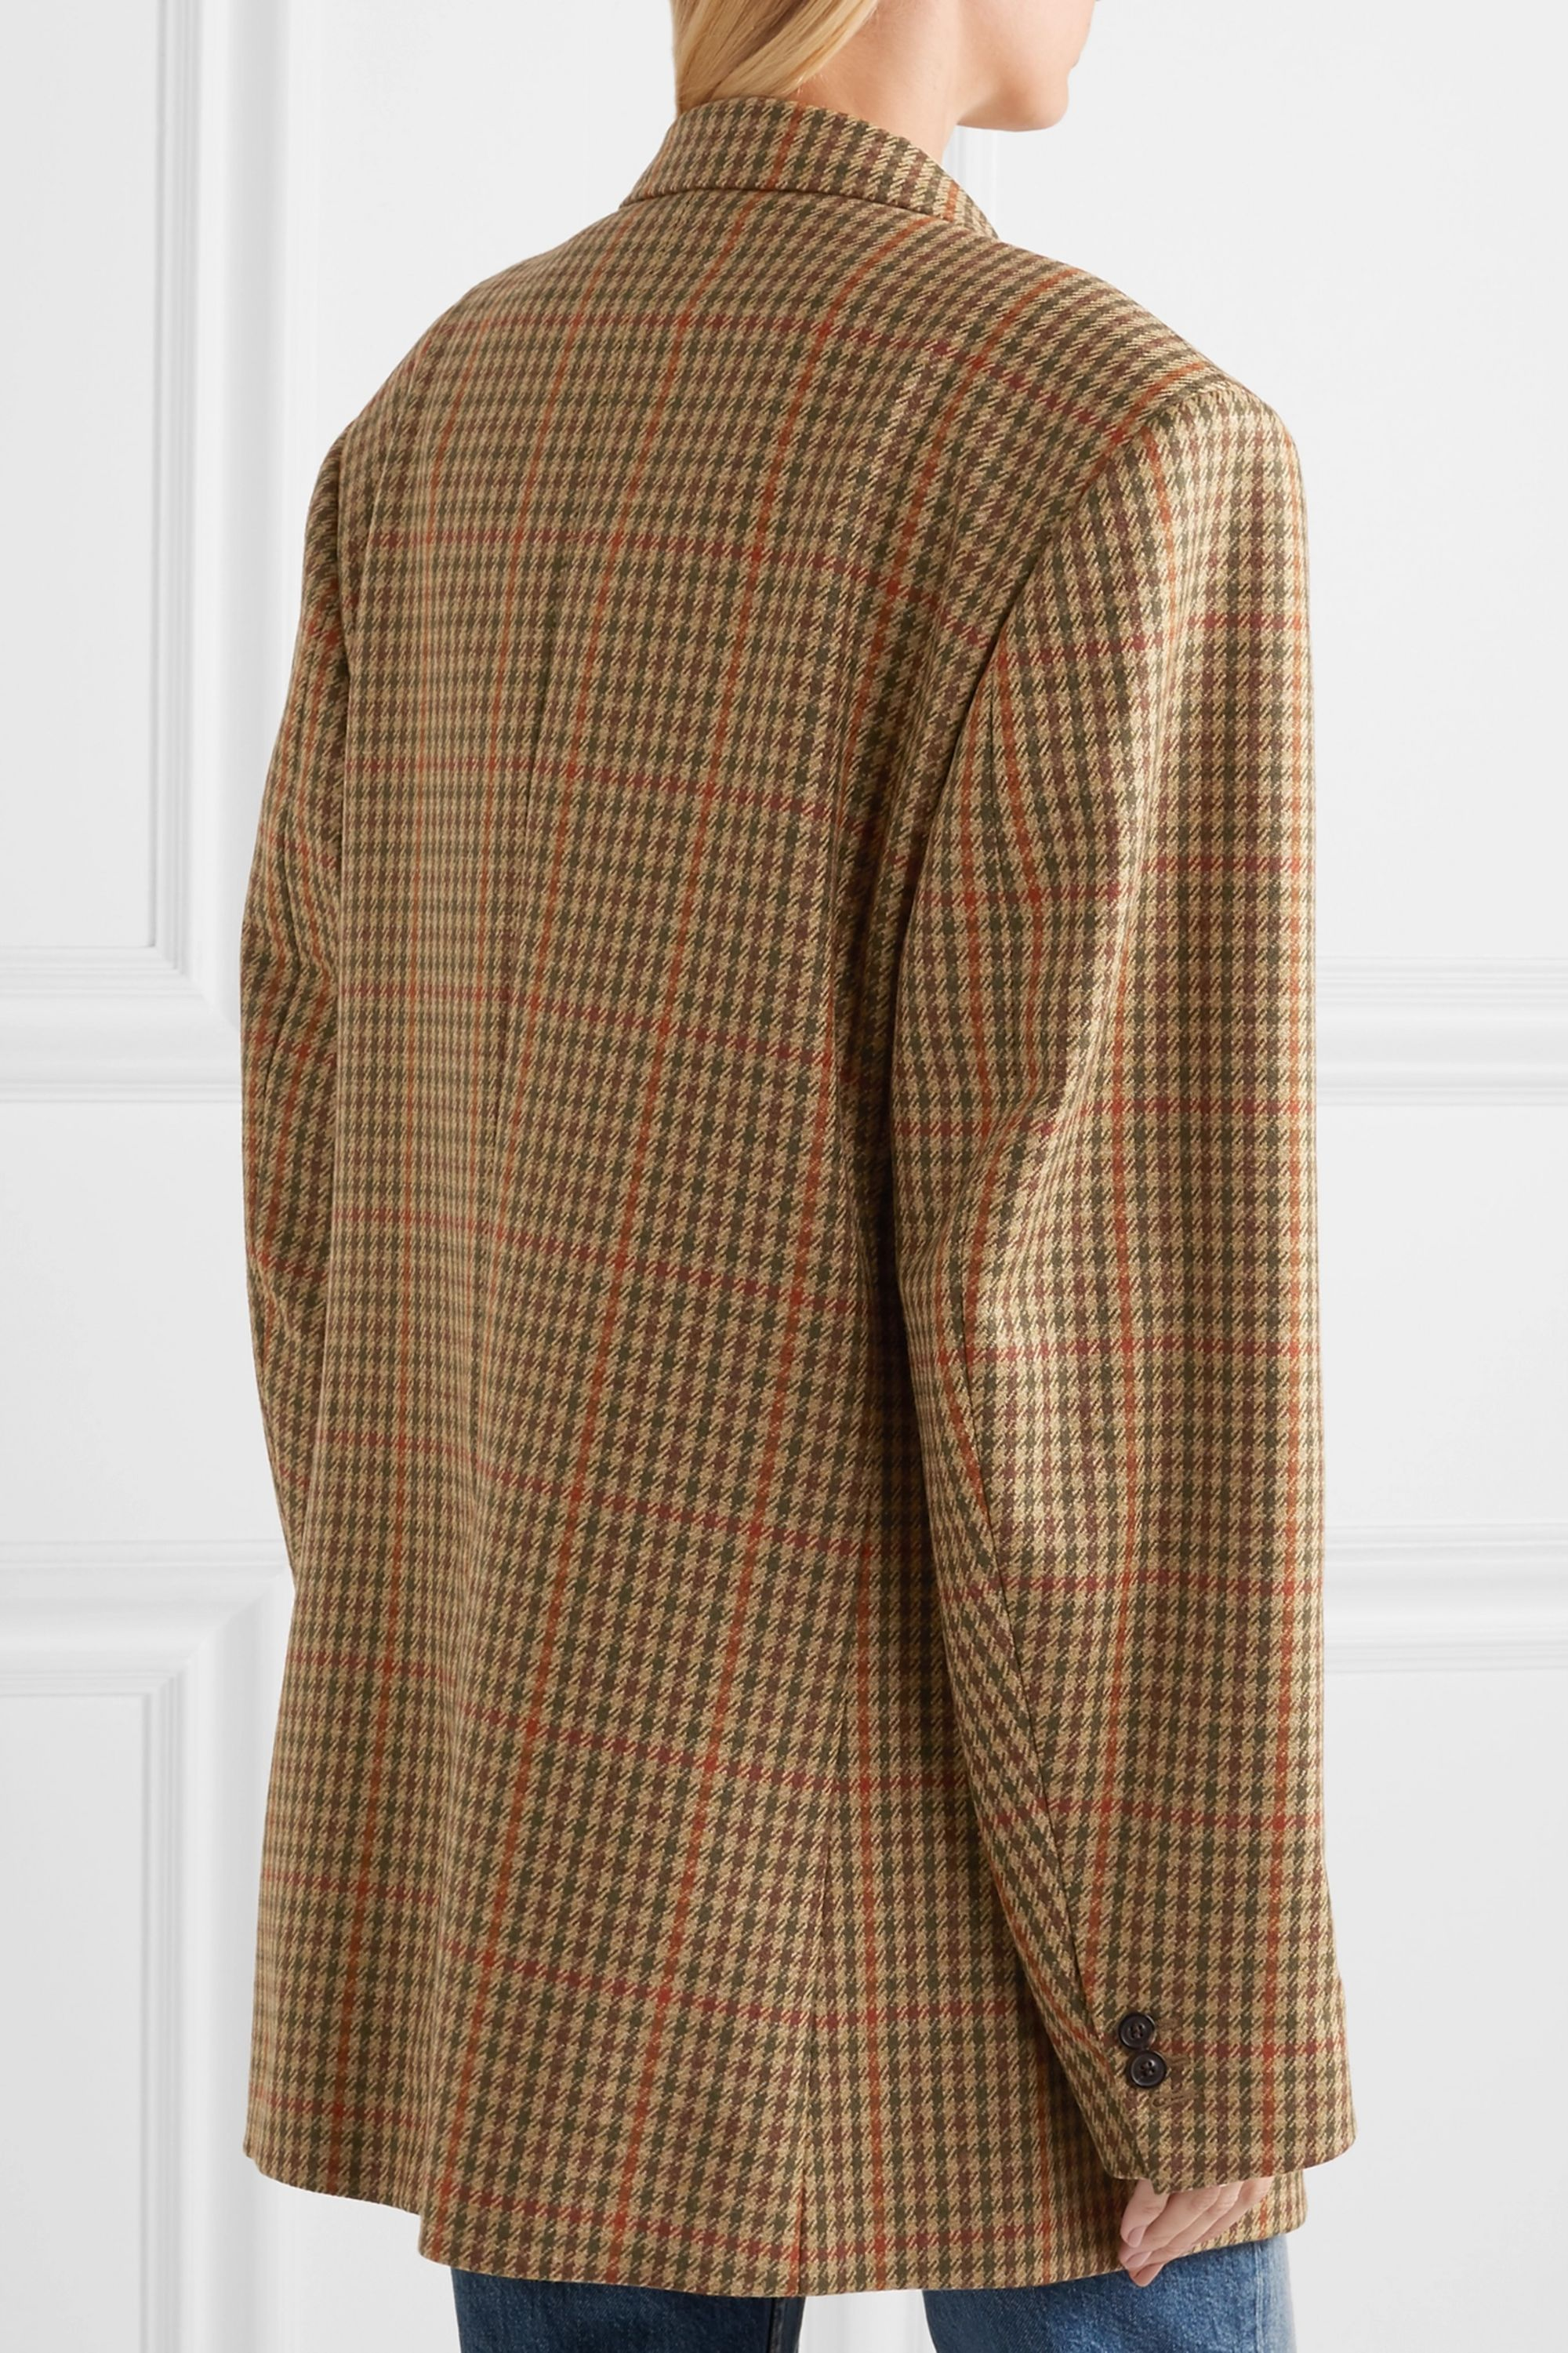 Maison Margiela Oversized checked wool blazer